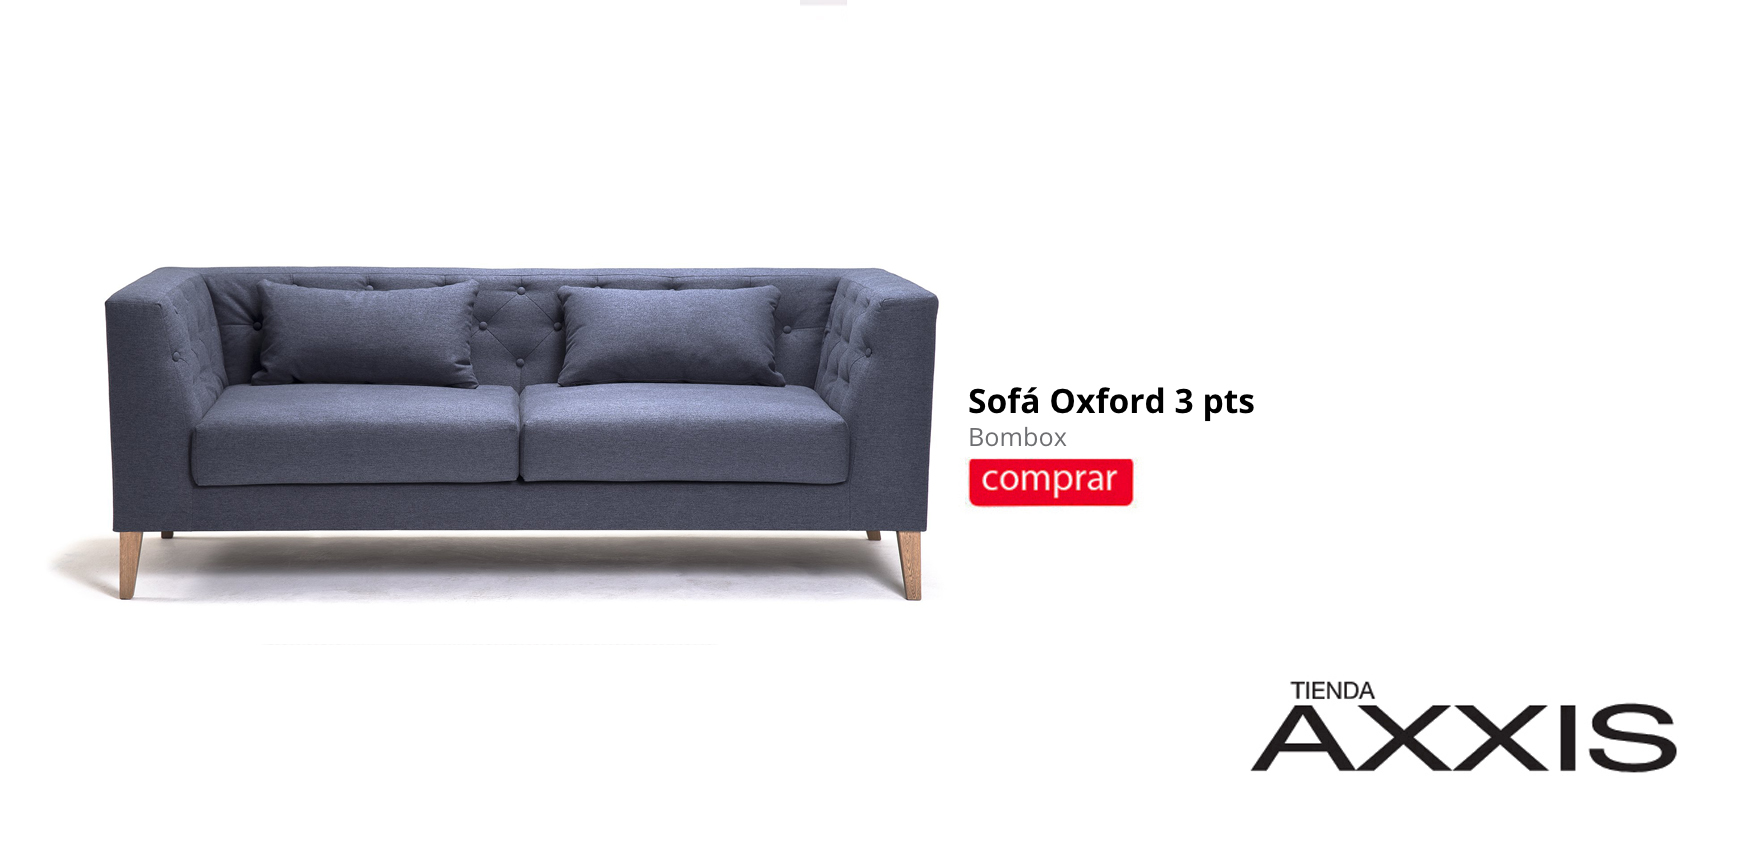 <a href='http://www.tiendaaxxis.com/categorias/18-mobiliario/1008-sofa-oxford-3-pts'><h2>TIENDA AXXIS</h2></a>